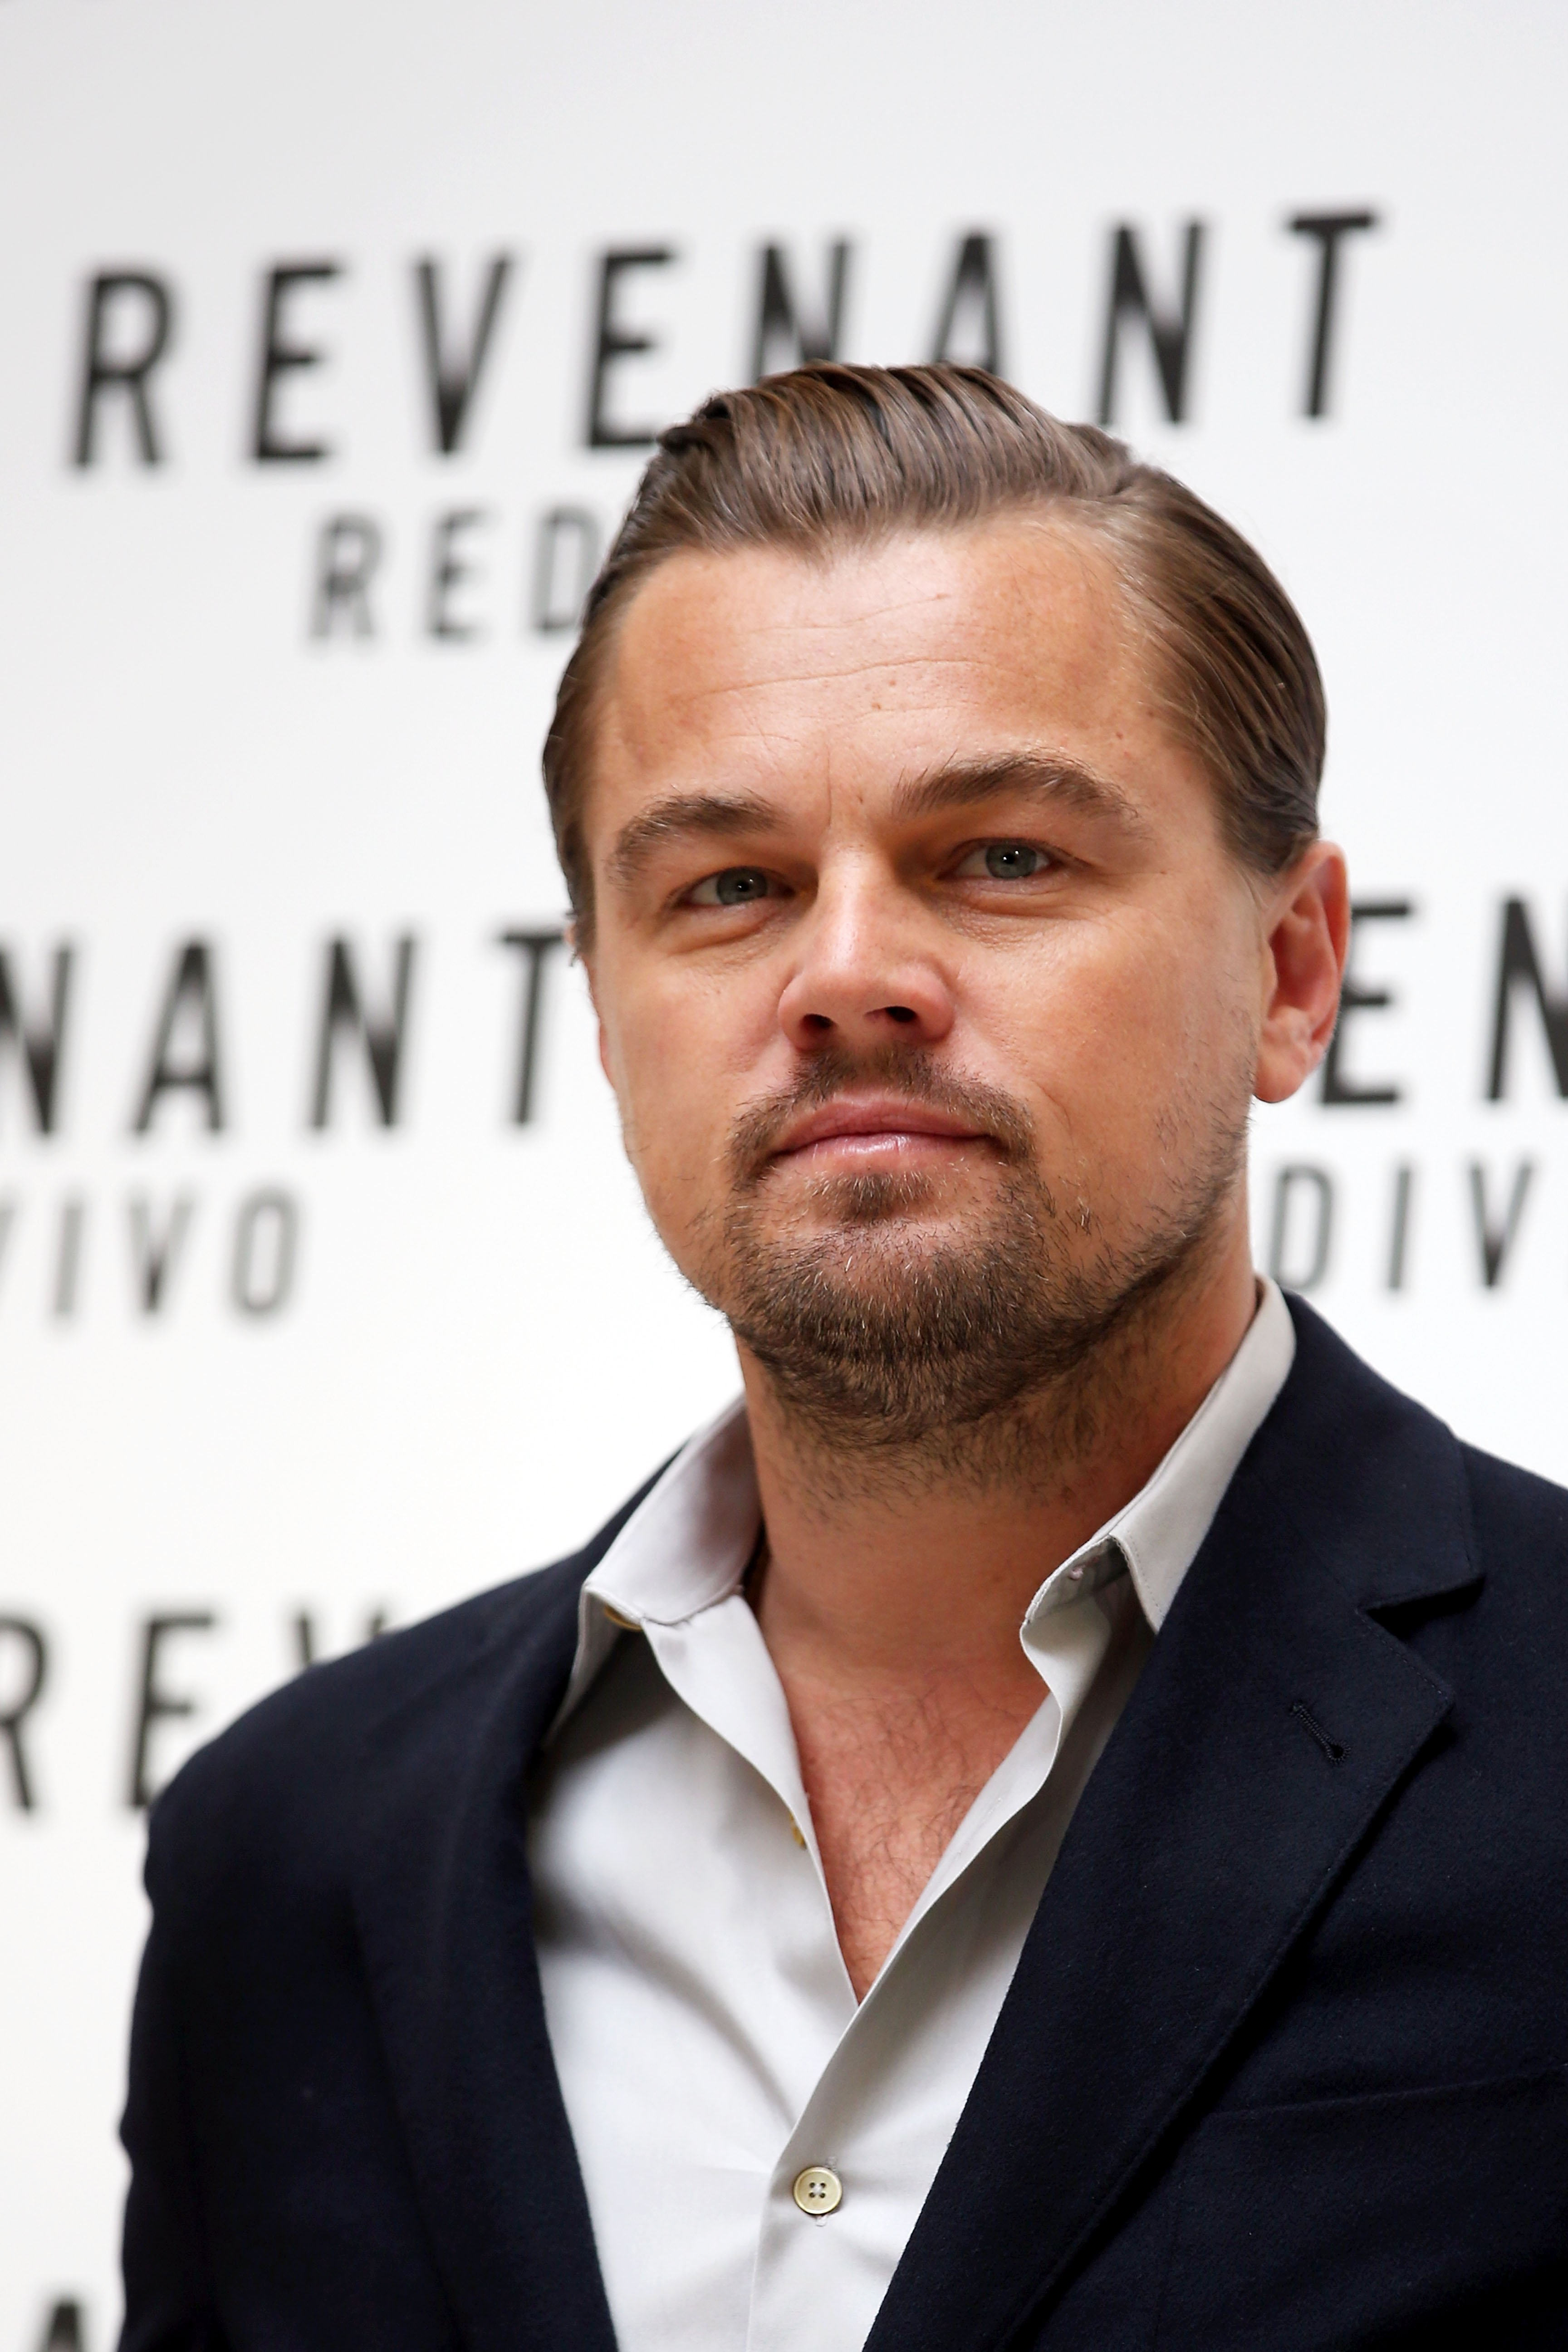 Leonardo DiCaprio attends a photocall for 'The Revenant' on January 16, 2016, in Rome, Italy. | Source: Getty Images.